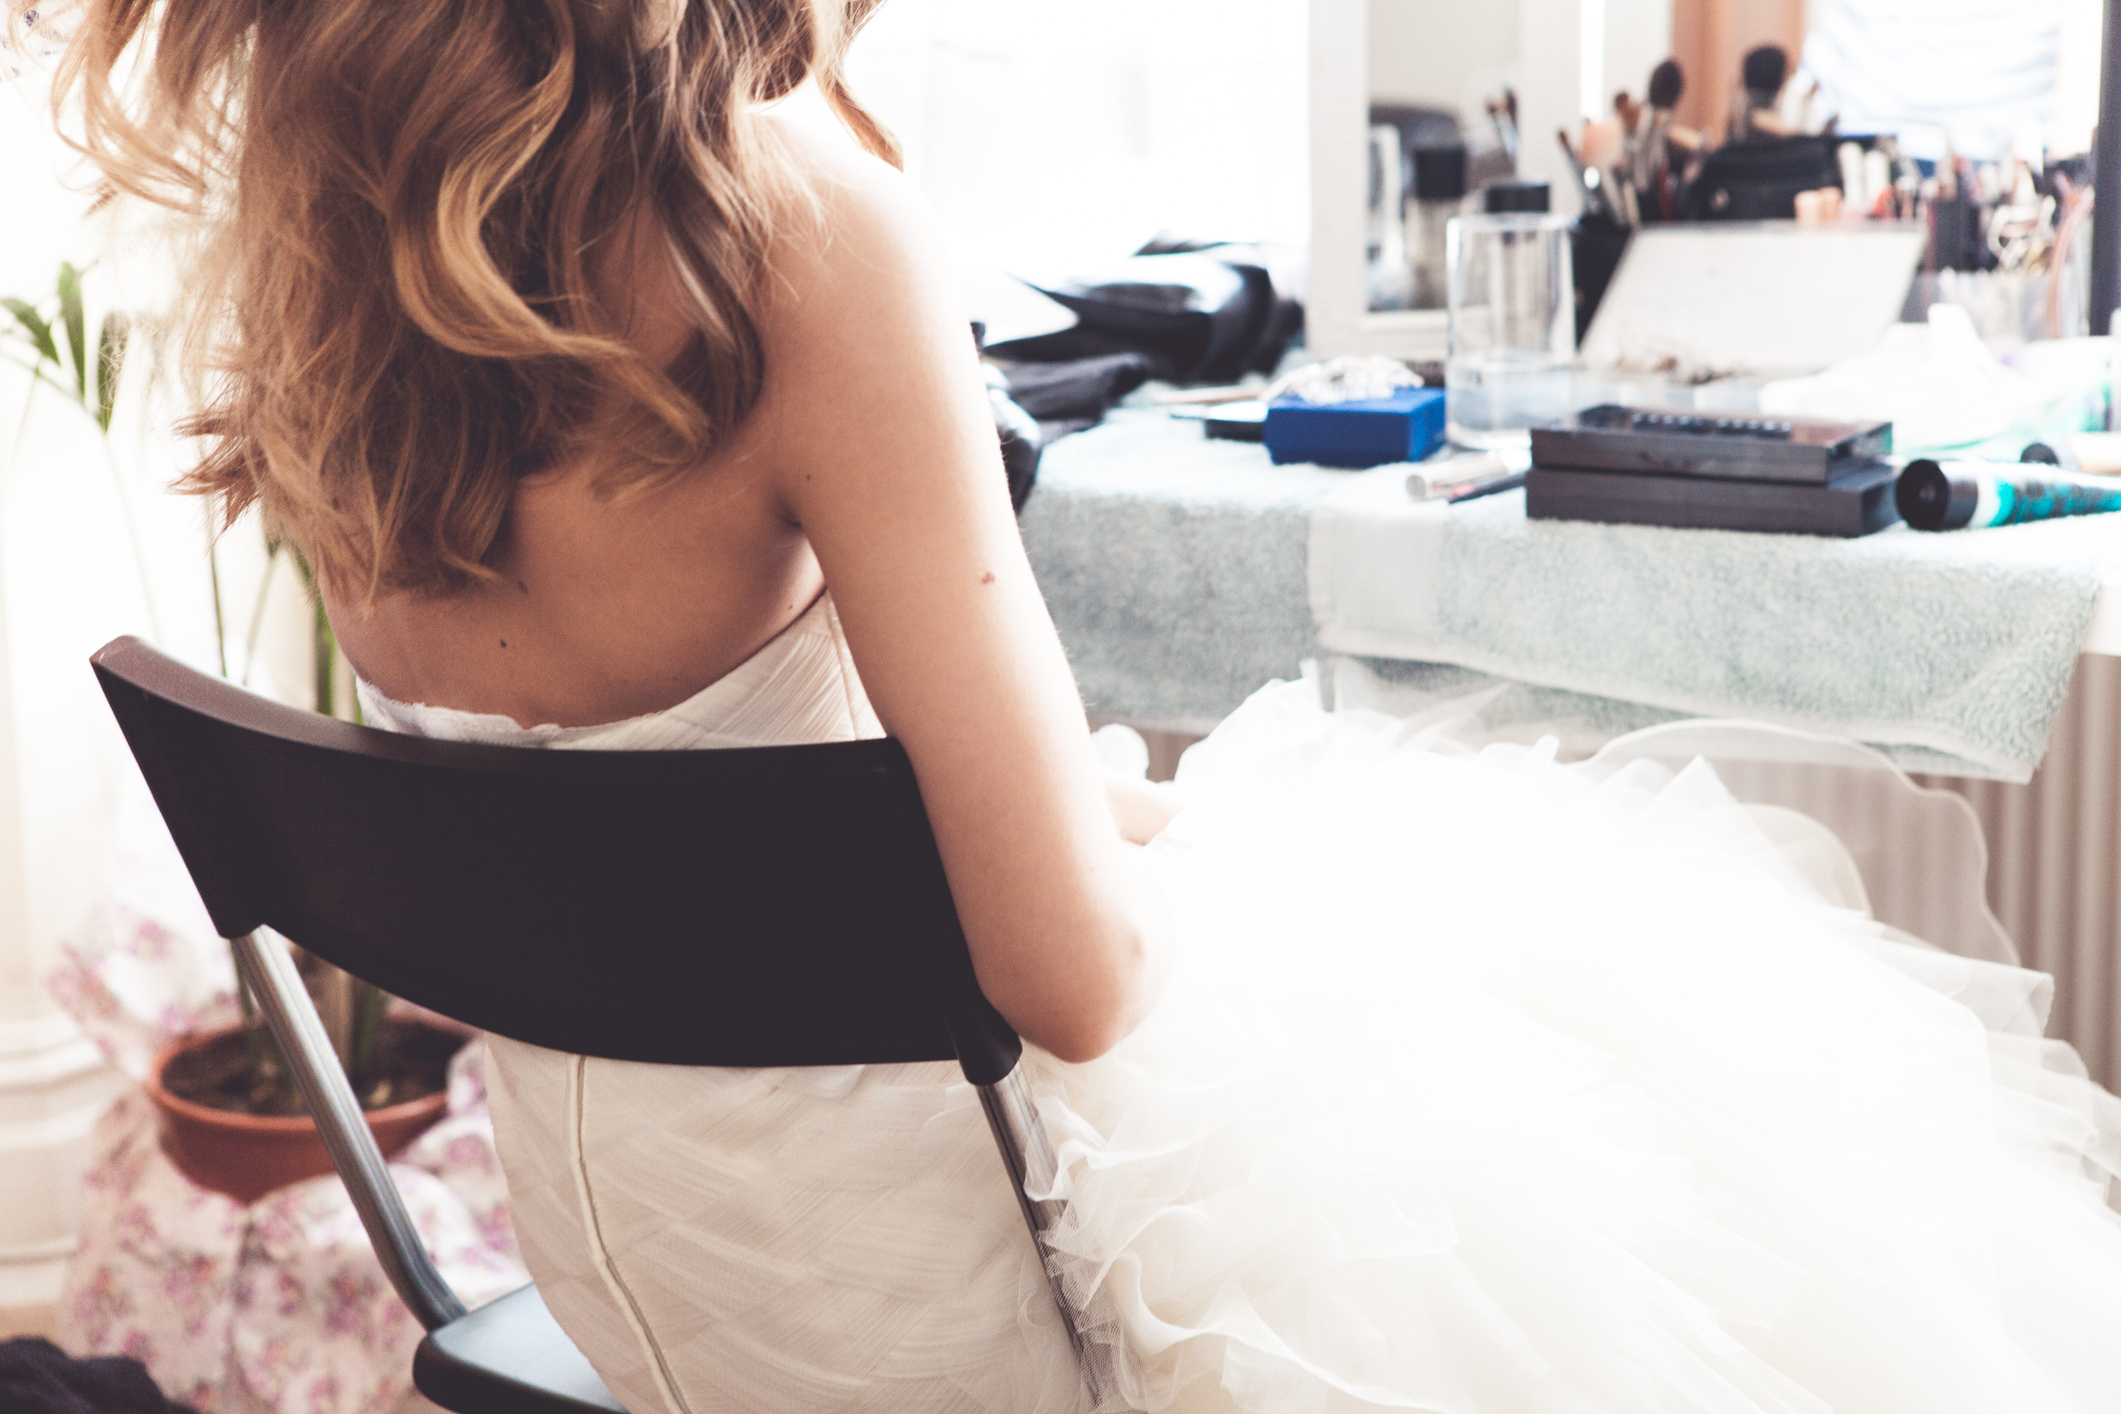 Smooth sailing in the bridal suite comes with preparation.